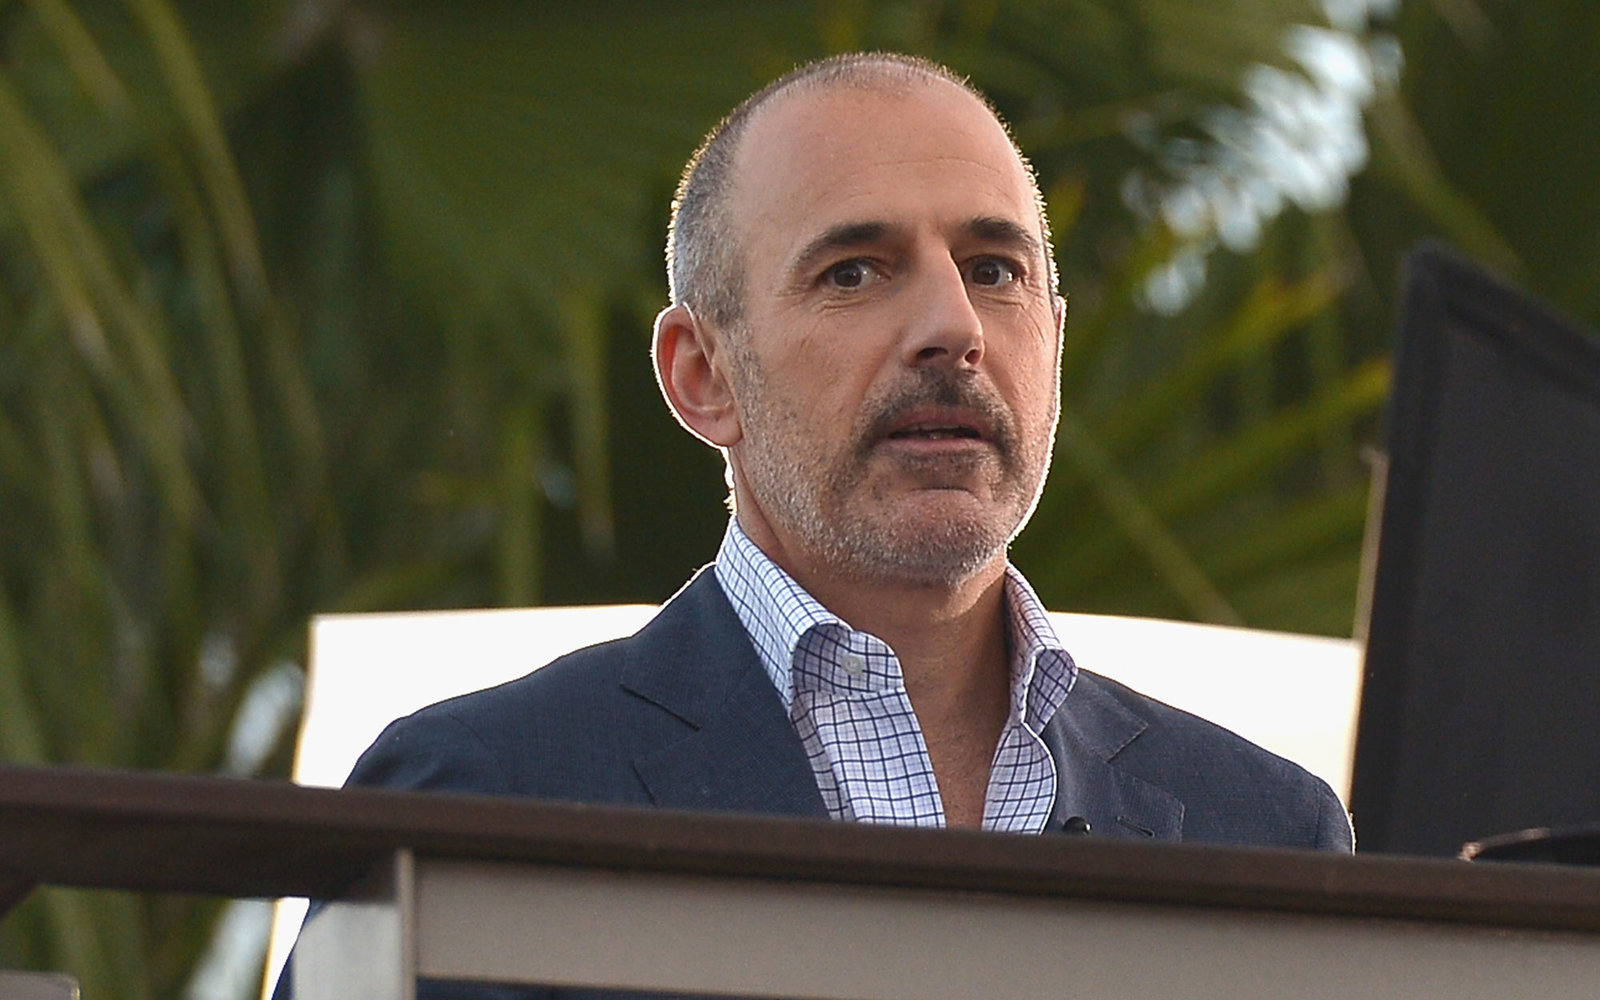 Matt Lauer Shares Outhouse Debacle In New Zealand Travel